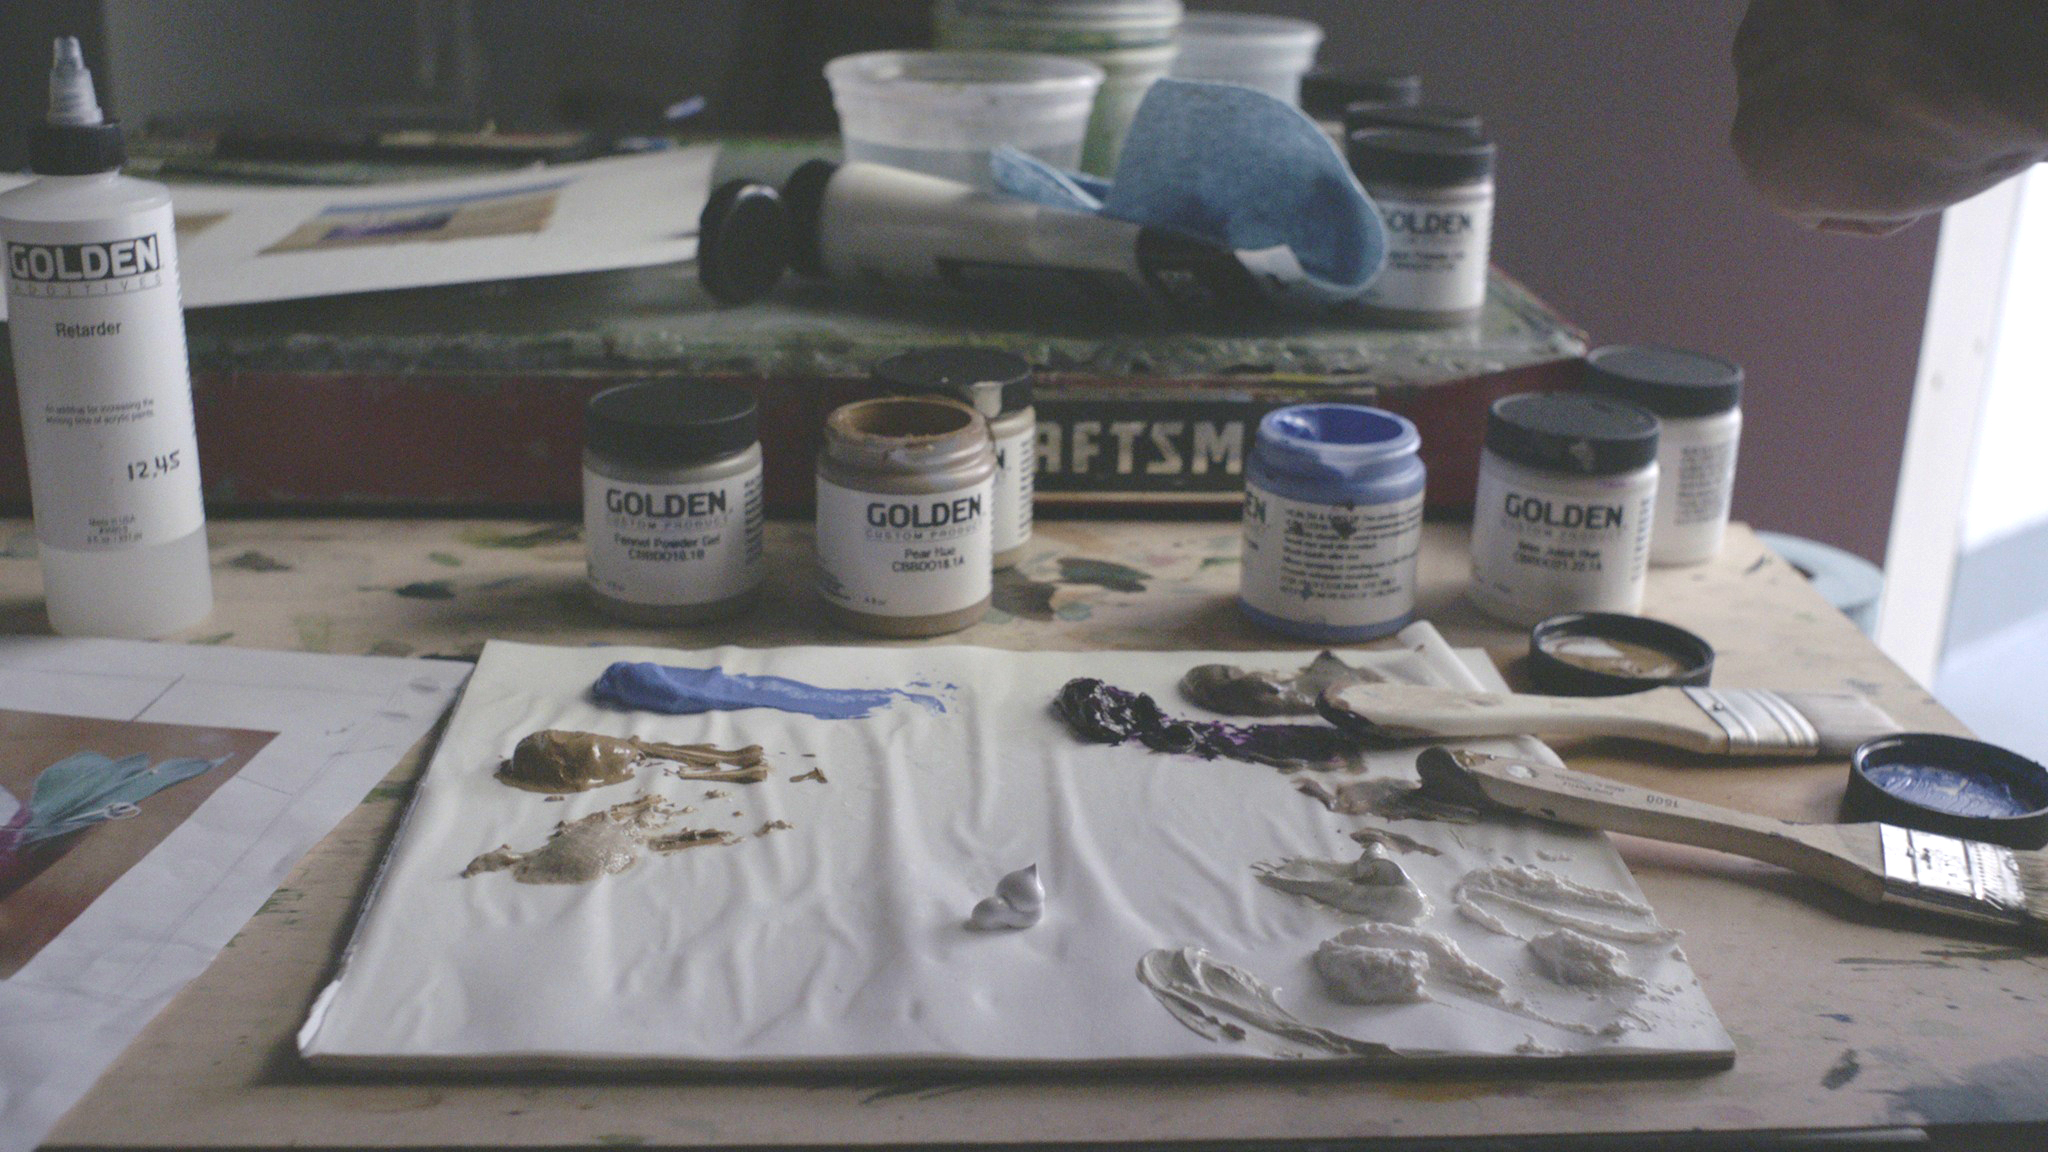 The paints were then given to 10 different artists from the New York Academy of Arts.